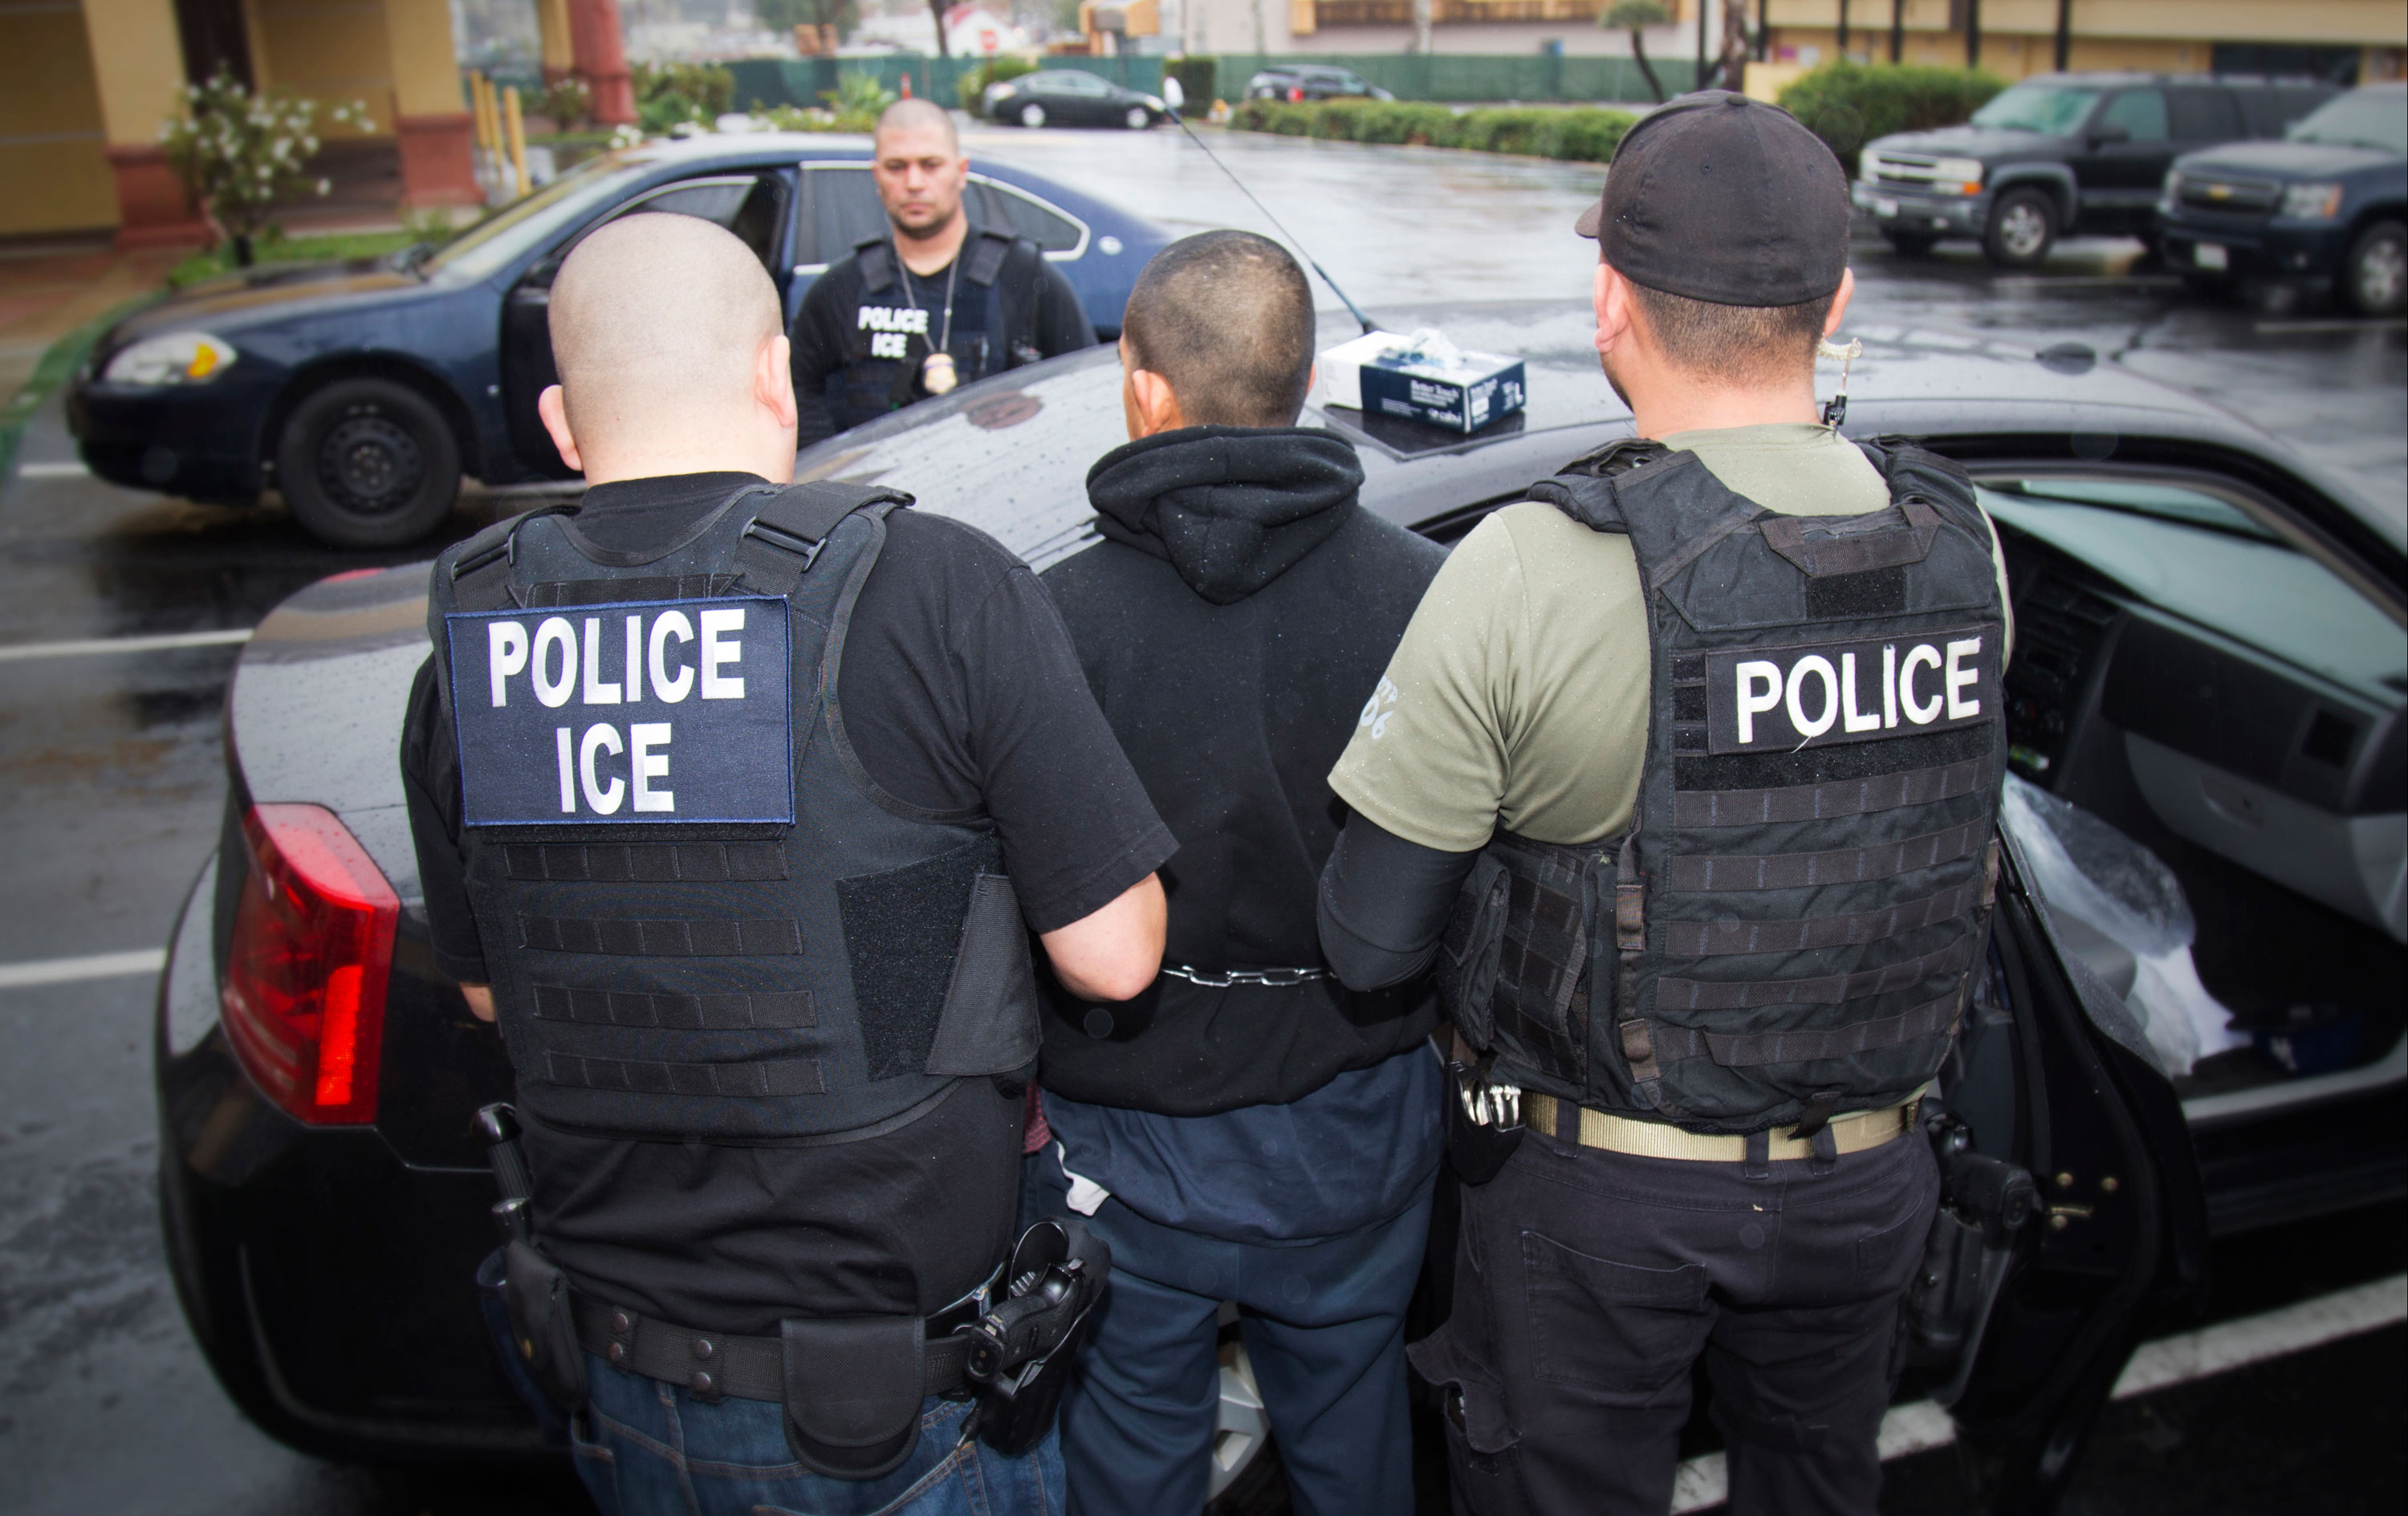 Trump's quick deportation plan may be illegal, past immigration chiefs say